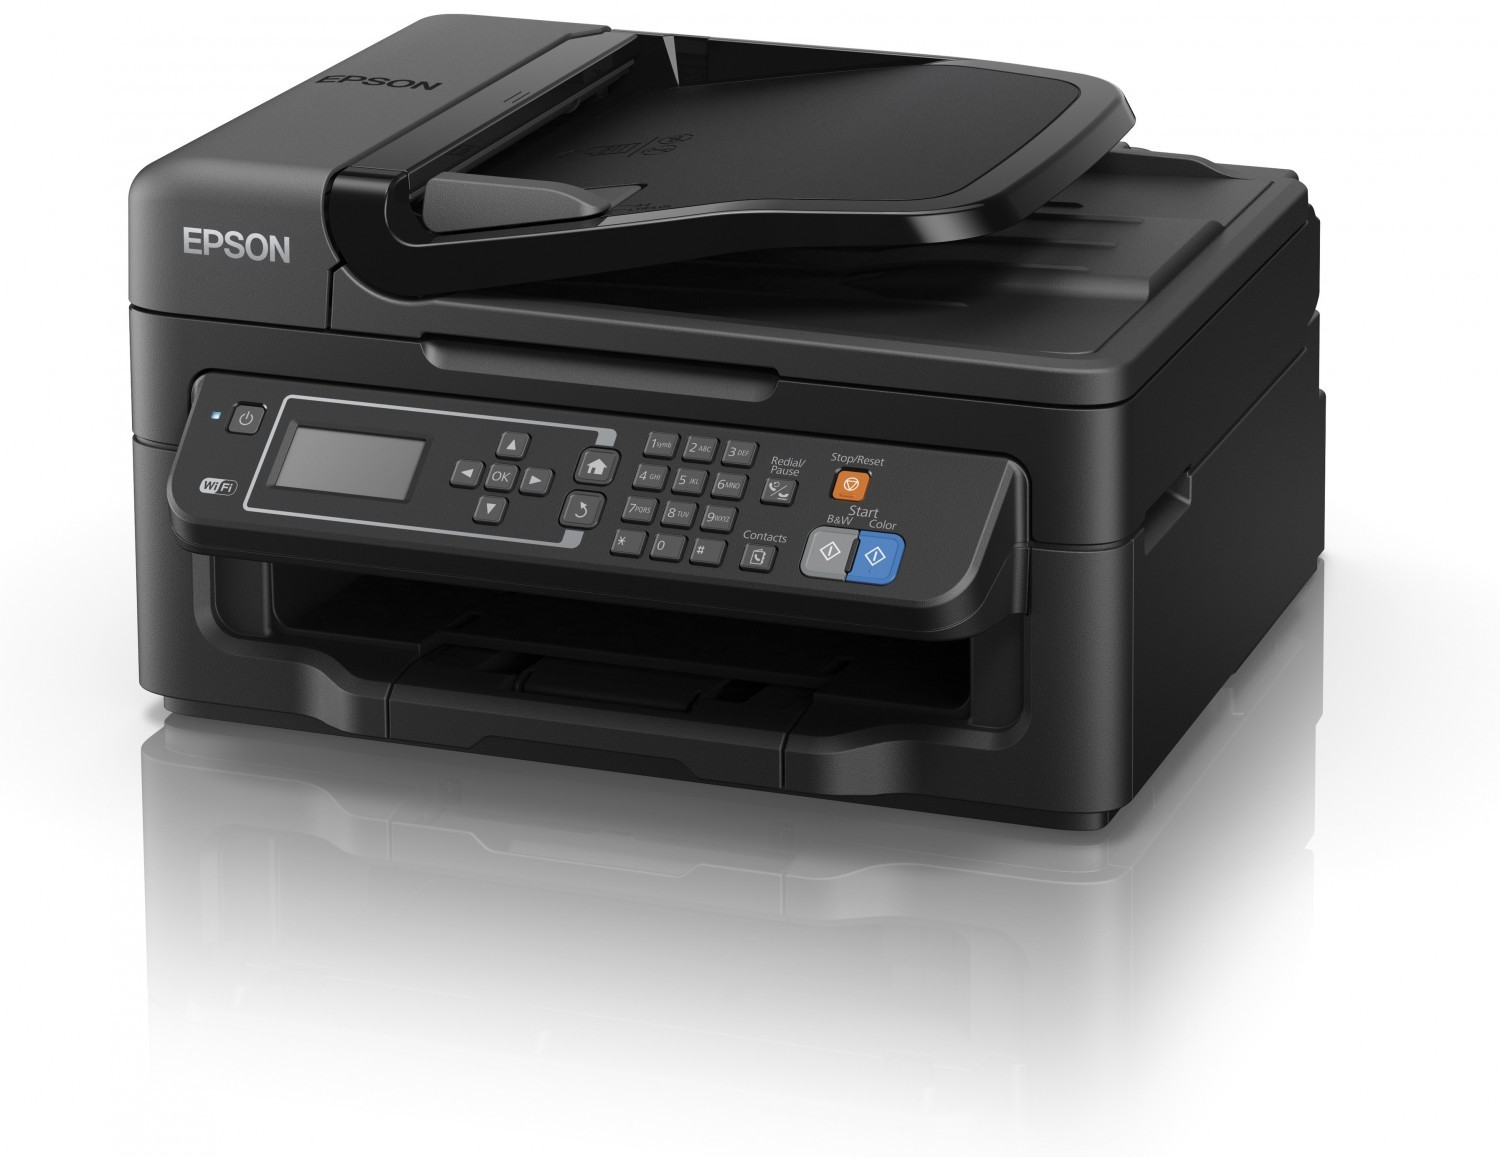 cartuchos de tinta para Impresora Epson Workforce WF-2630WF